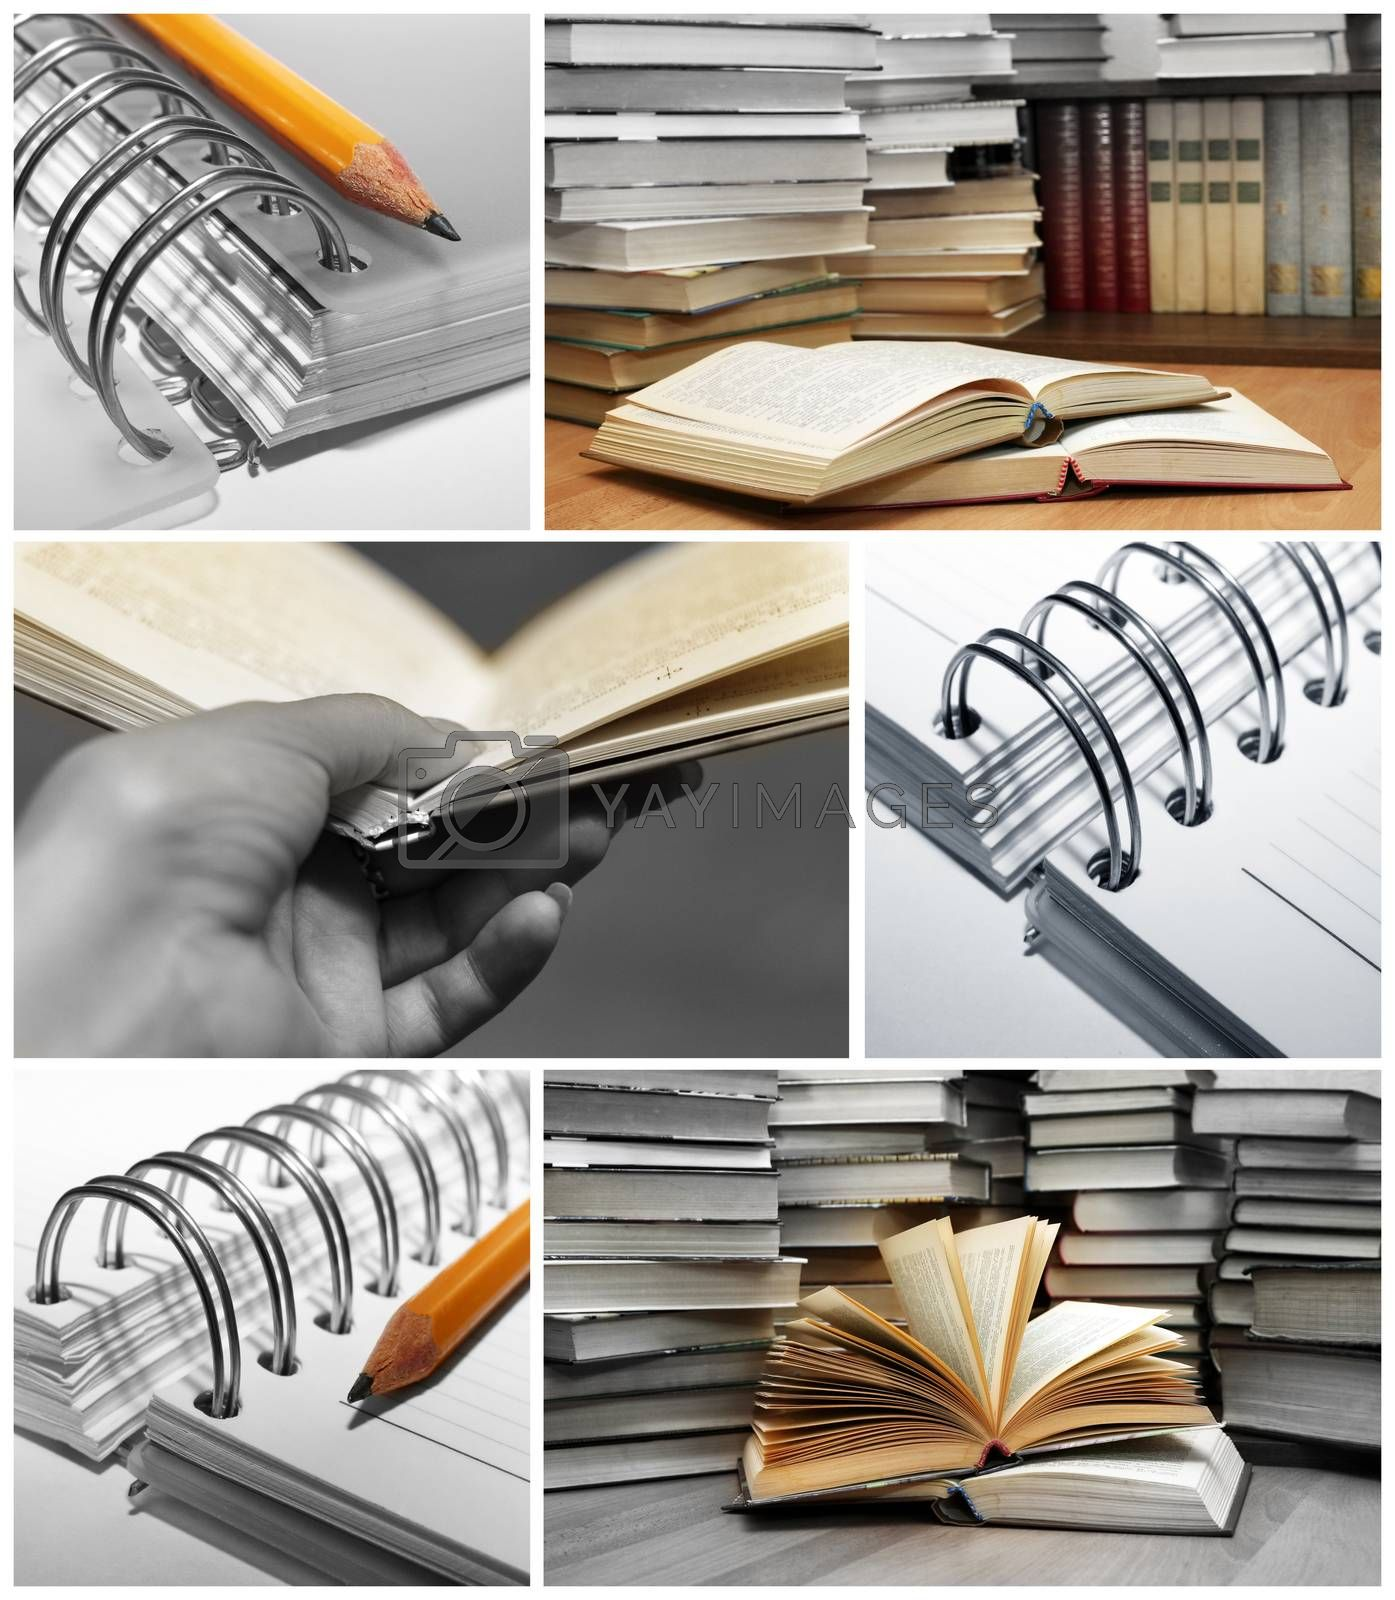 Collage of opened and stacked books